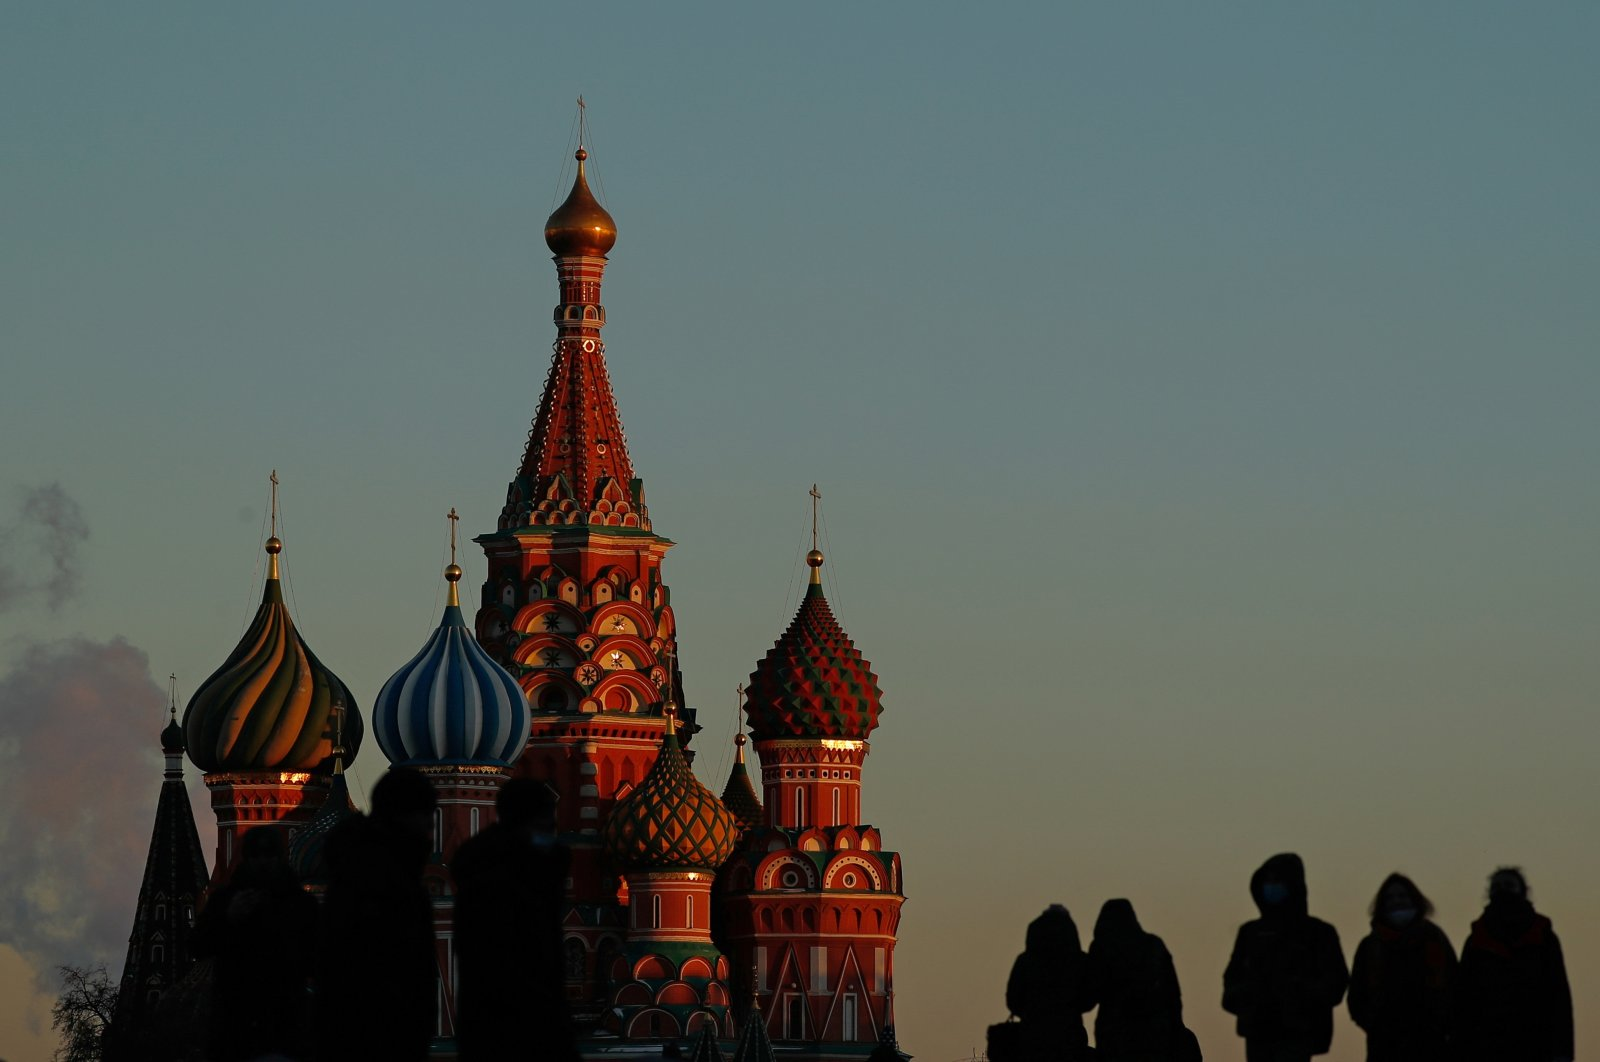 People walk along Red Square in front of St. Basil's Cathedral in Moscow, Russia March 11, 2021. (Reuters Photo)